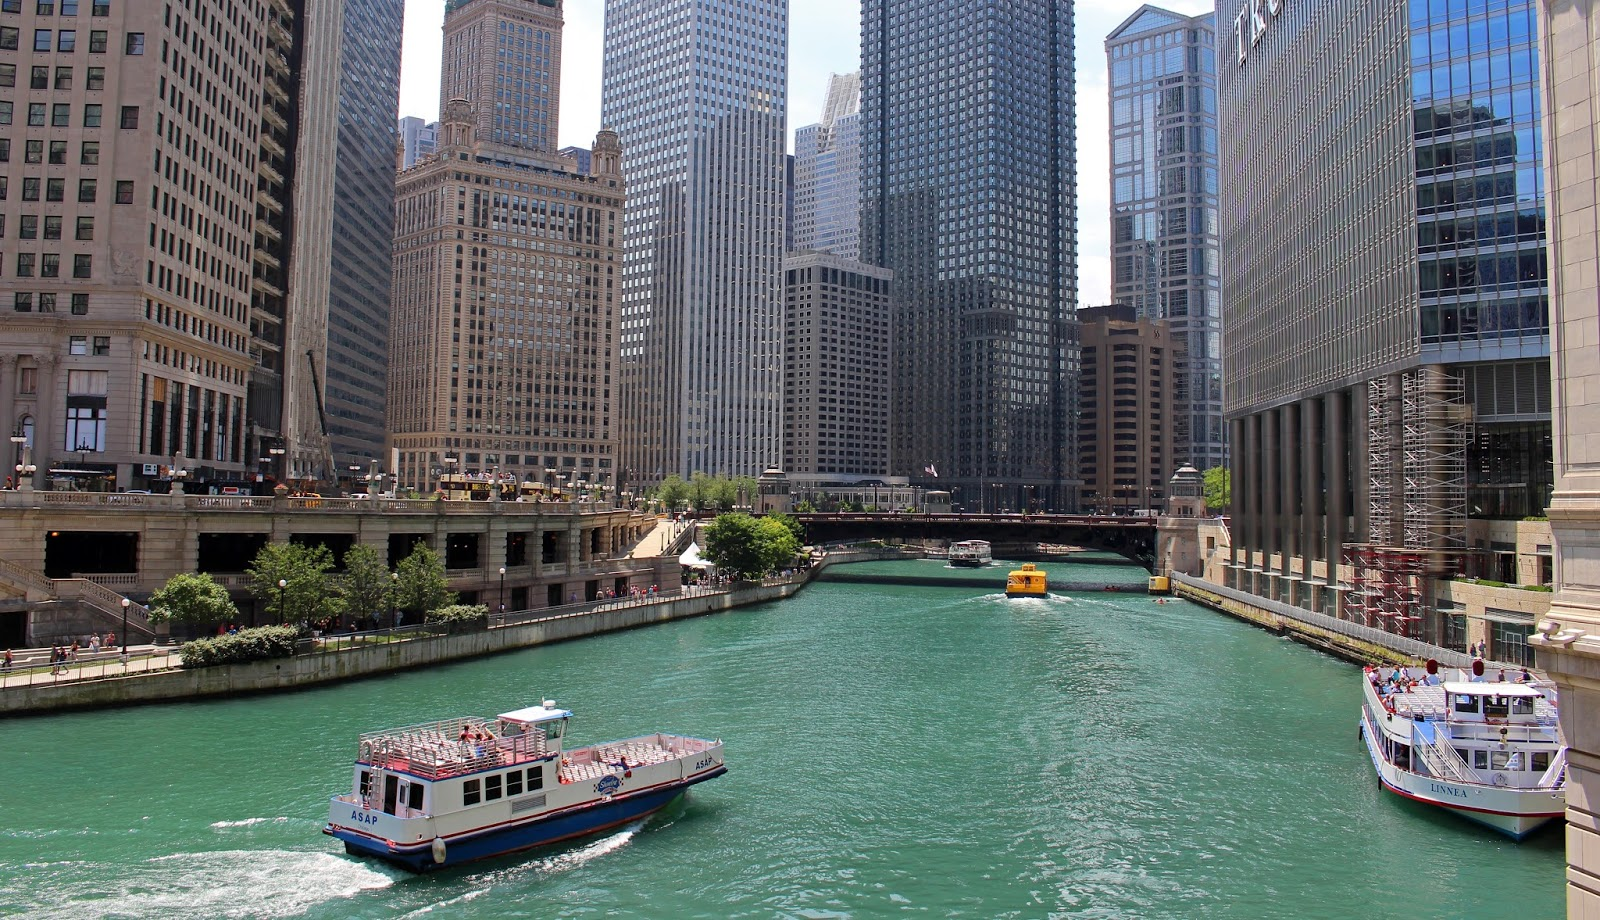 One Of My Choices Was The Official Architecture Foundation River Cruise With Chicago S First Lady